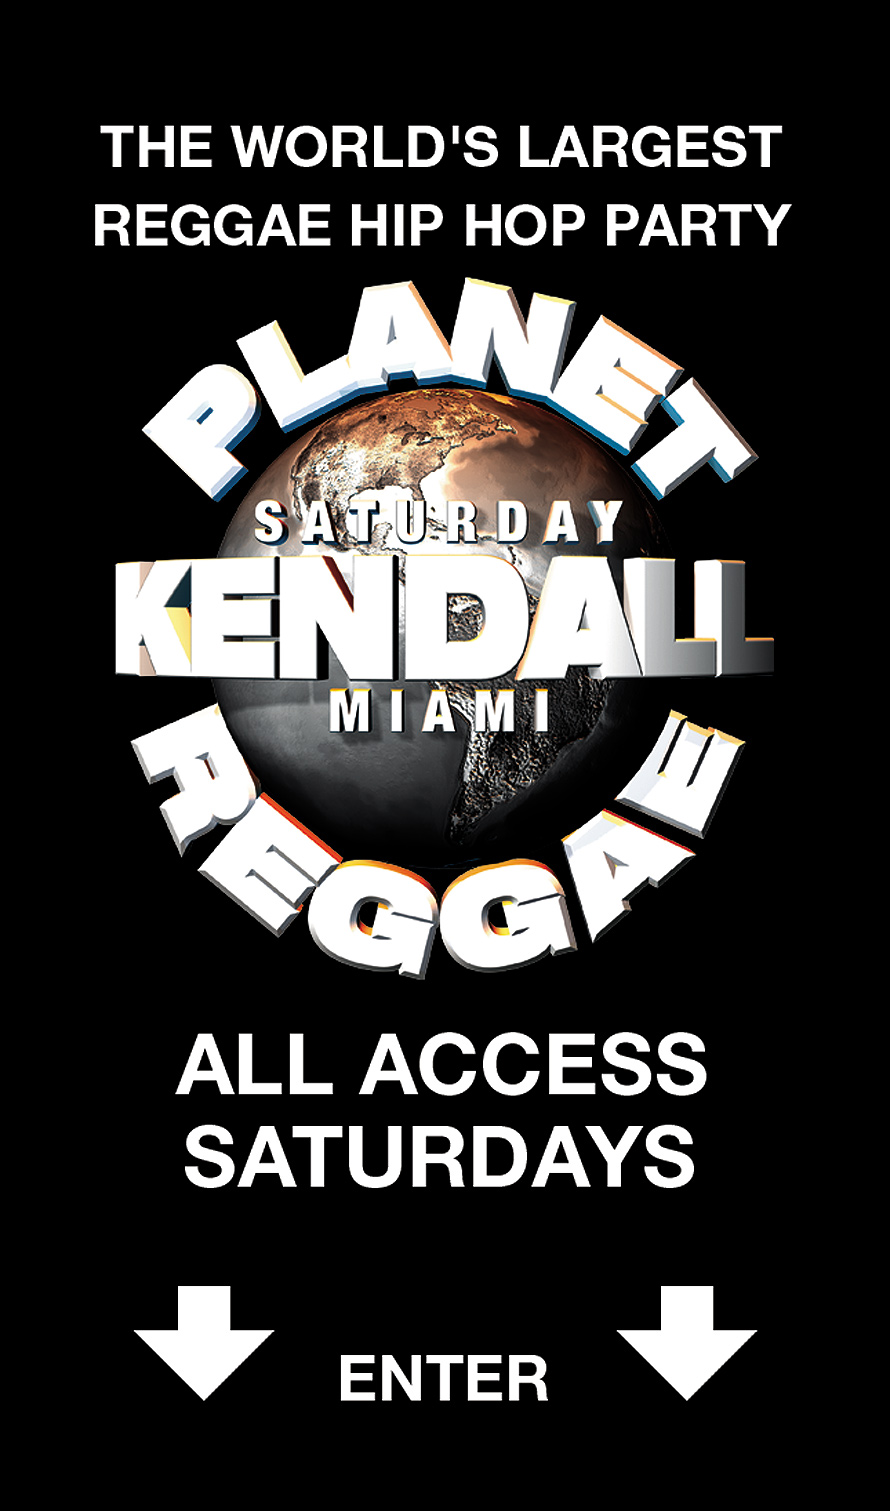 Planet Reggae Complimentary Pass at Rascals